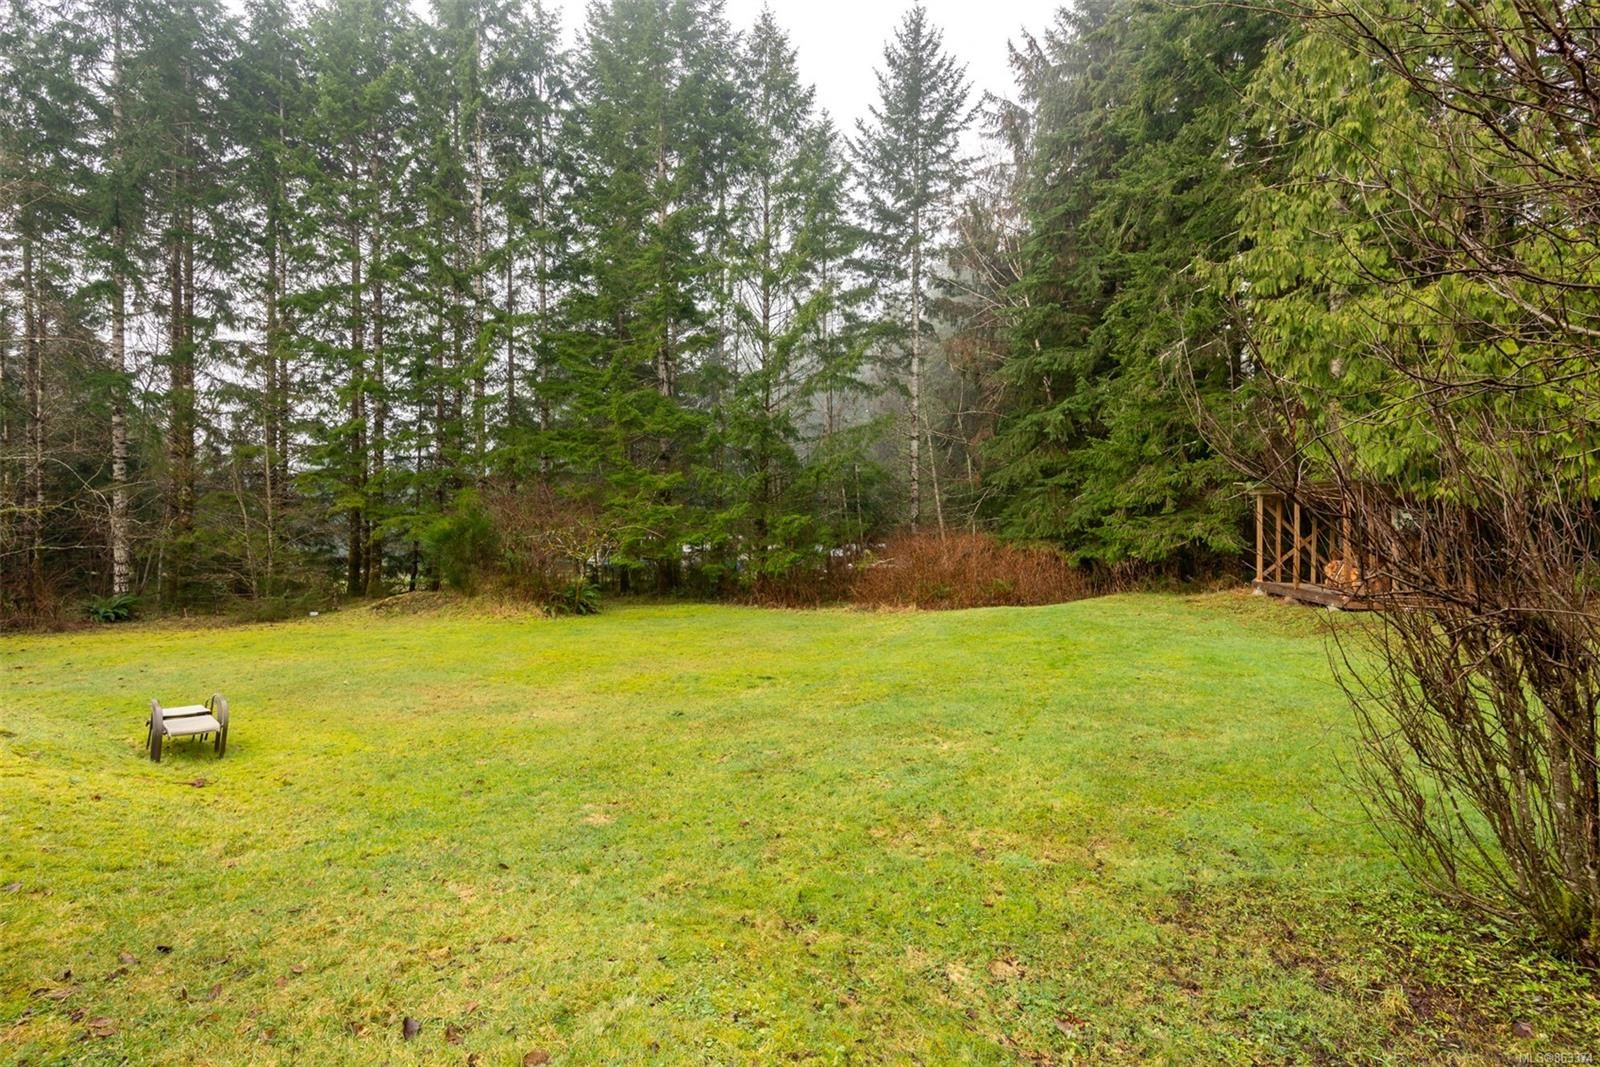 Photo 7: Photos: 572 Sabre Rd in : NI Kelsey Bay/Sayward House for sale (North Island)  : MLS®# 863374